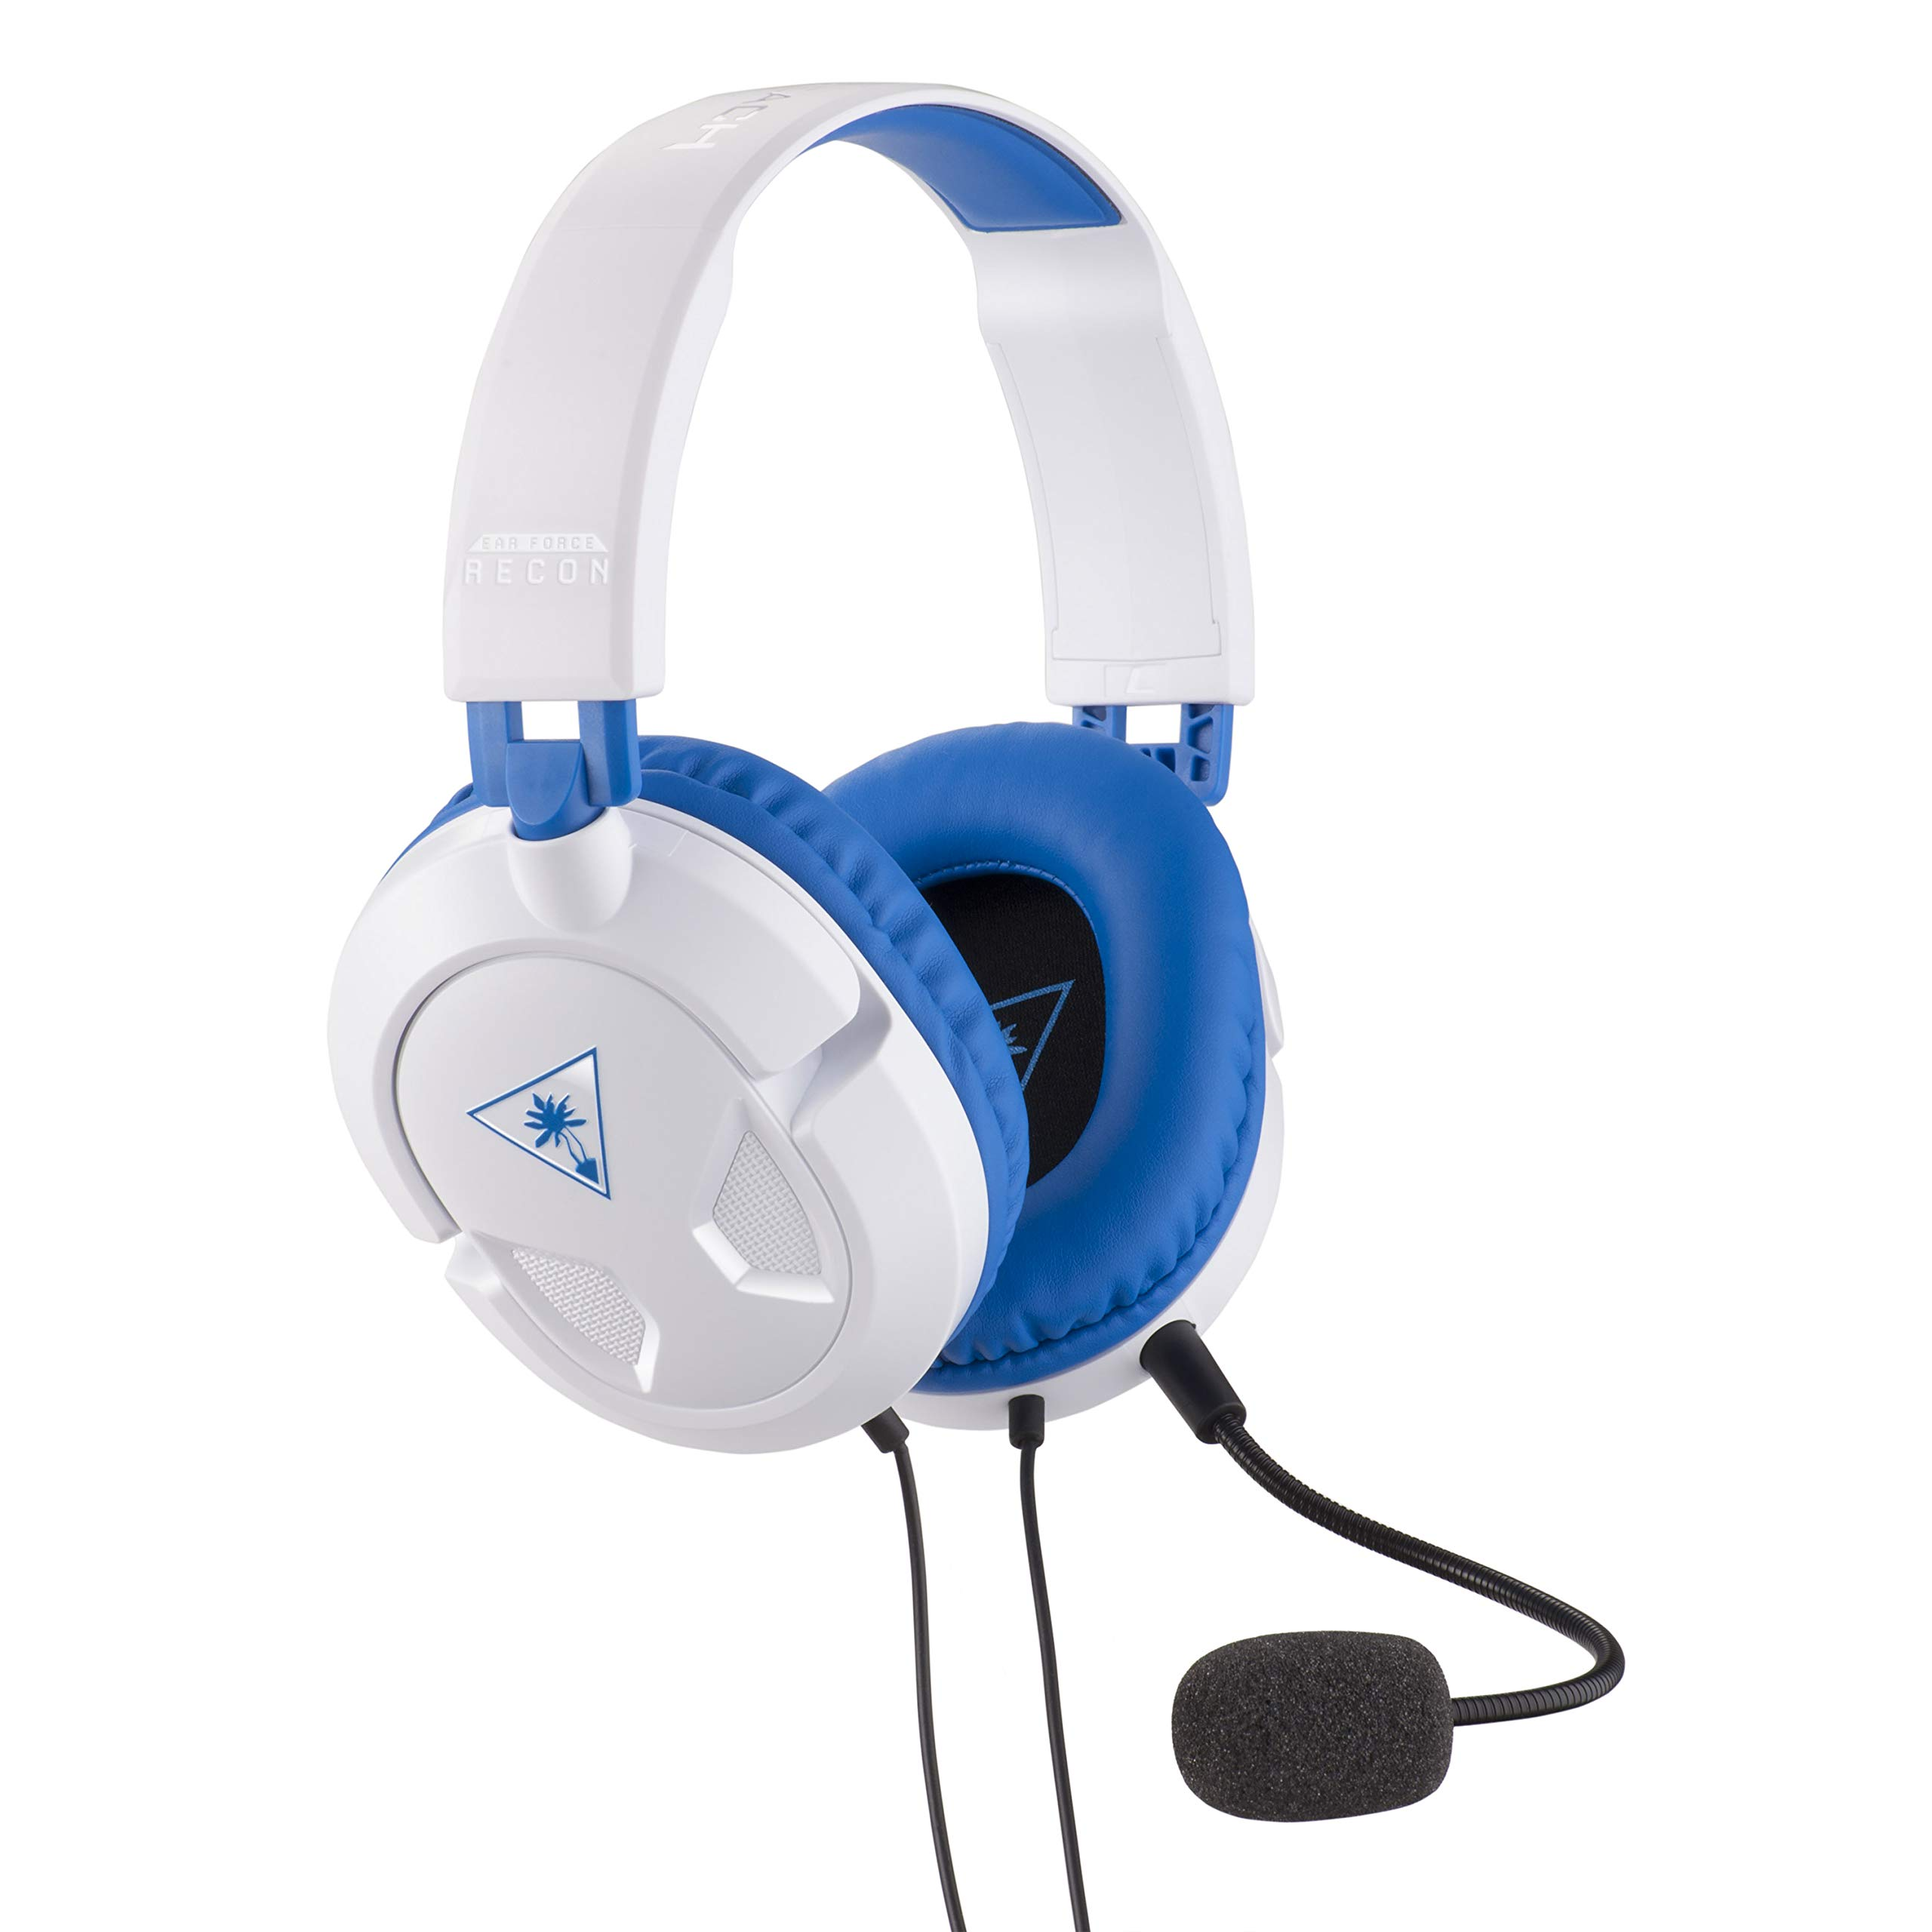 Turtle Beach Recon 60P White Amplified Stereo Gaming Headset for PS4 Pro & PS4 - PlayStation 4